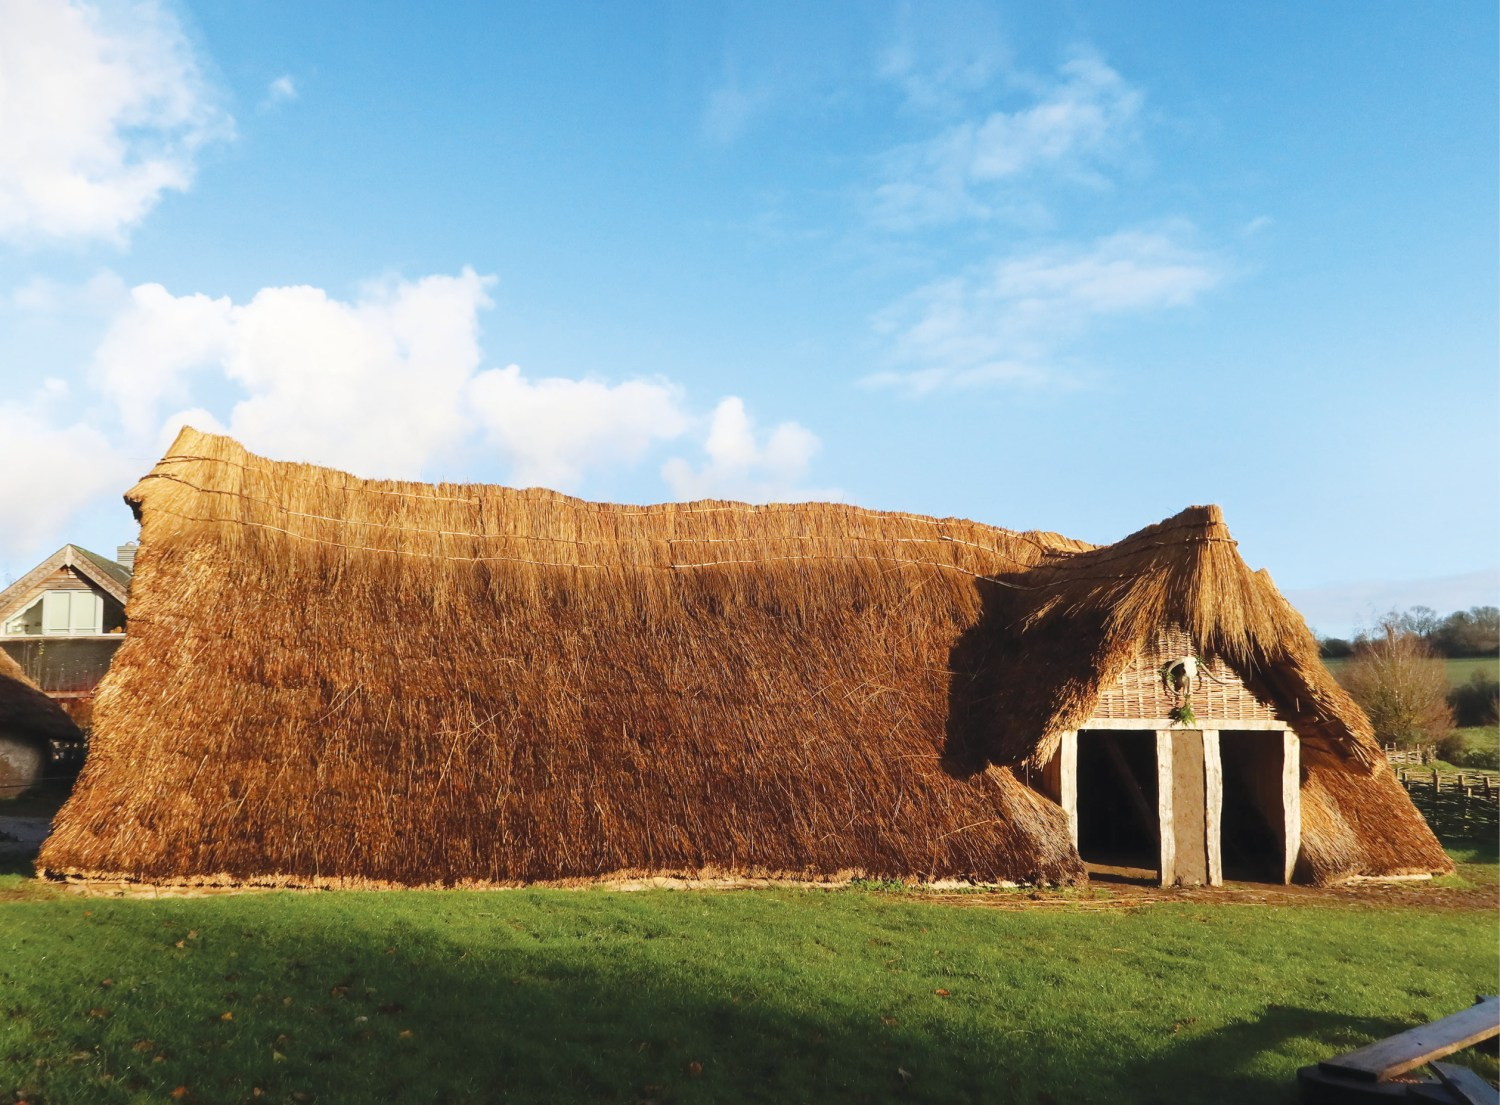 Above The new Neolithic: Butser Ancient Farm's latest reconstructed building is based on the remains of a nearly 6,000- year-old house that was excavated by Wessex Archaeology in Berkshire.